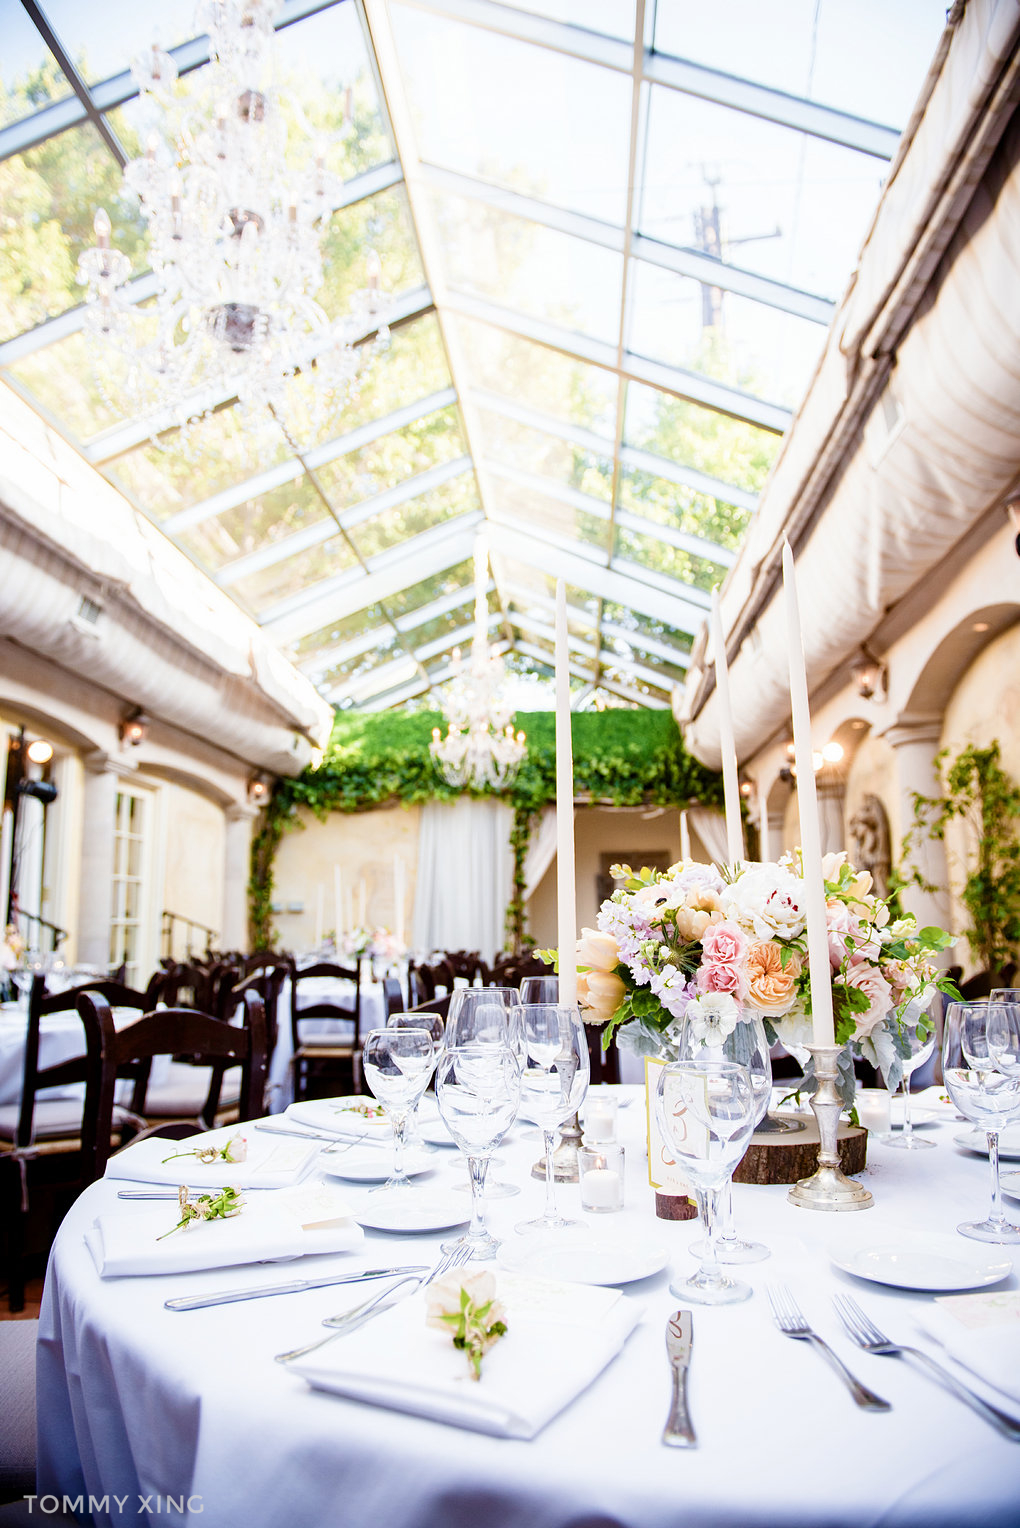 IL CIELO WEDDING Beverly Hills by Tommy Xing Photography 104.jpg